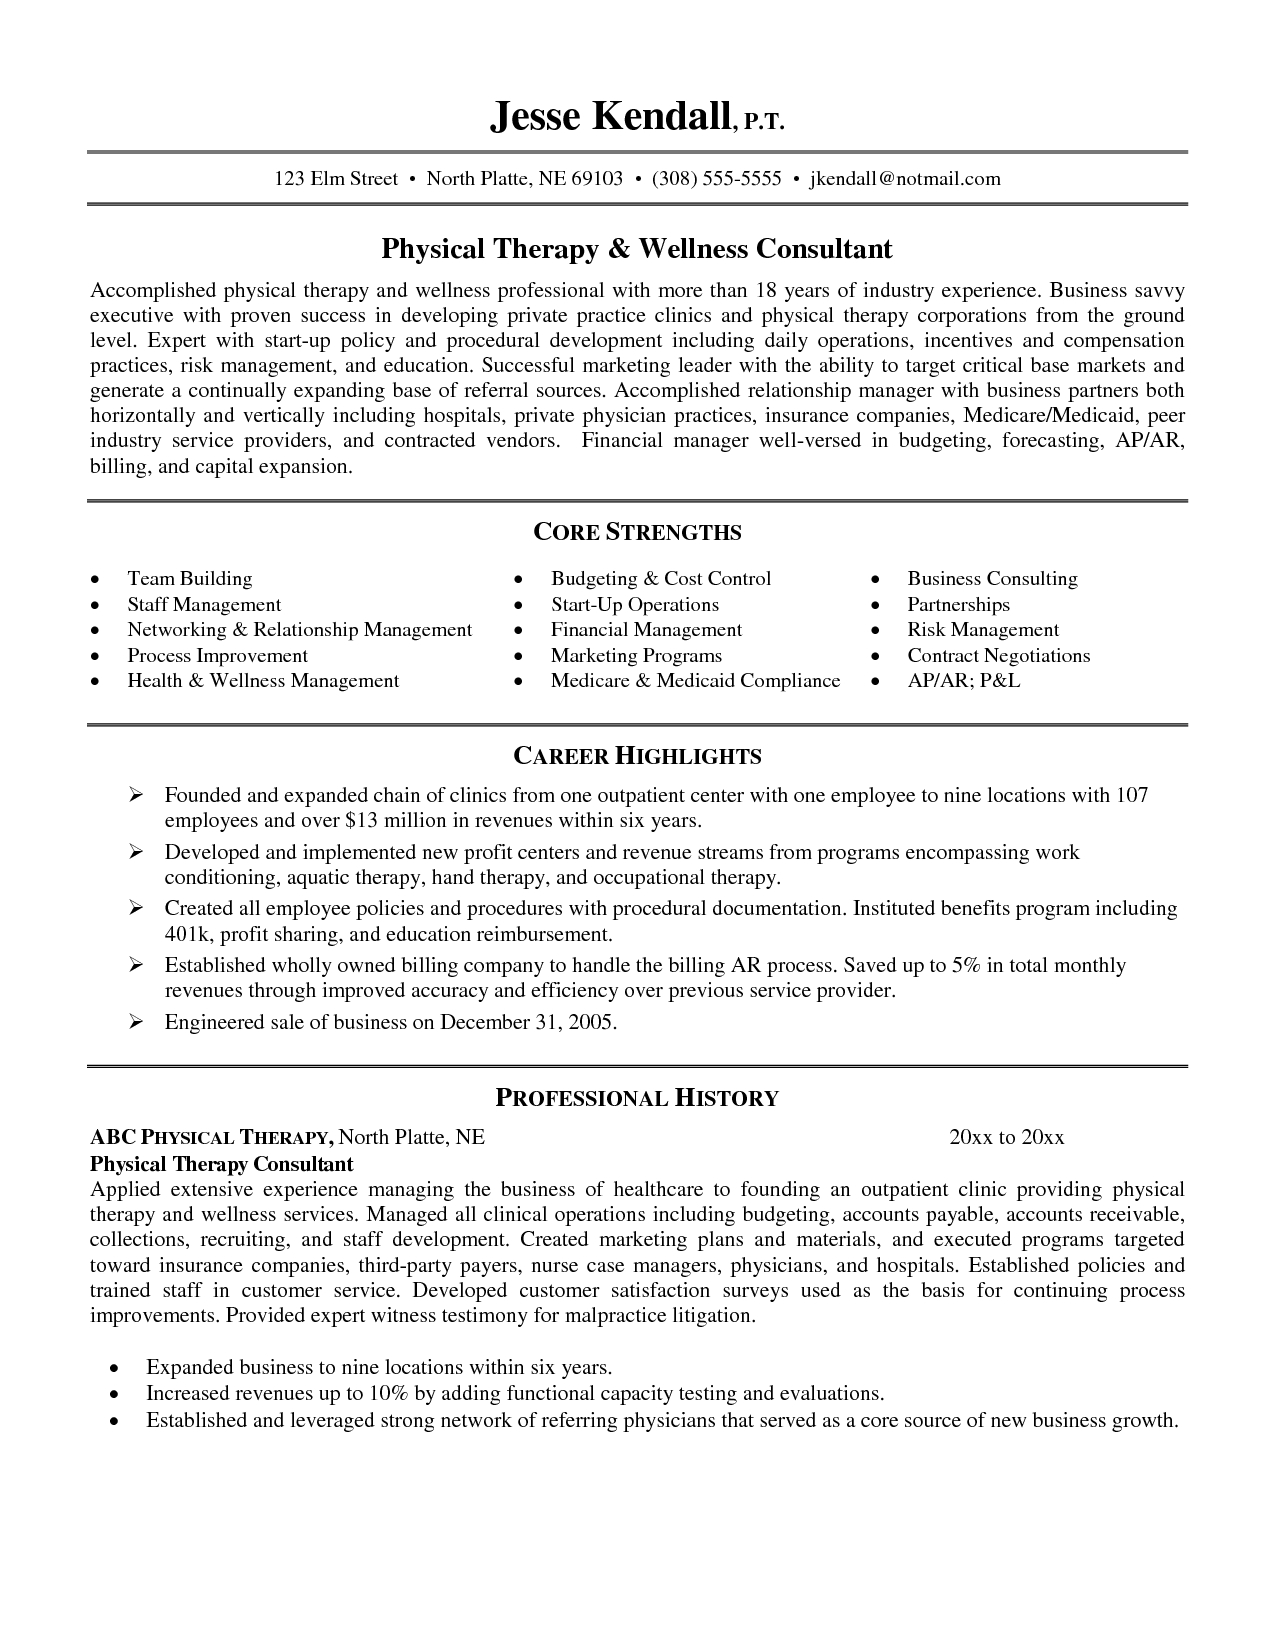 Sample Pta Resume Pta Resume Physical Contemporary Resume Template Massage Therapist  Resume Examples Sample Occupational Therapy  Occupational Therapy Resumes